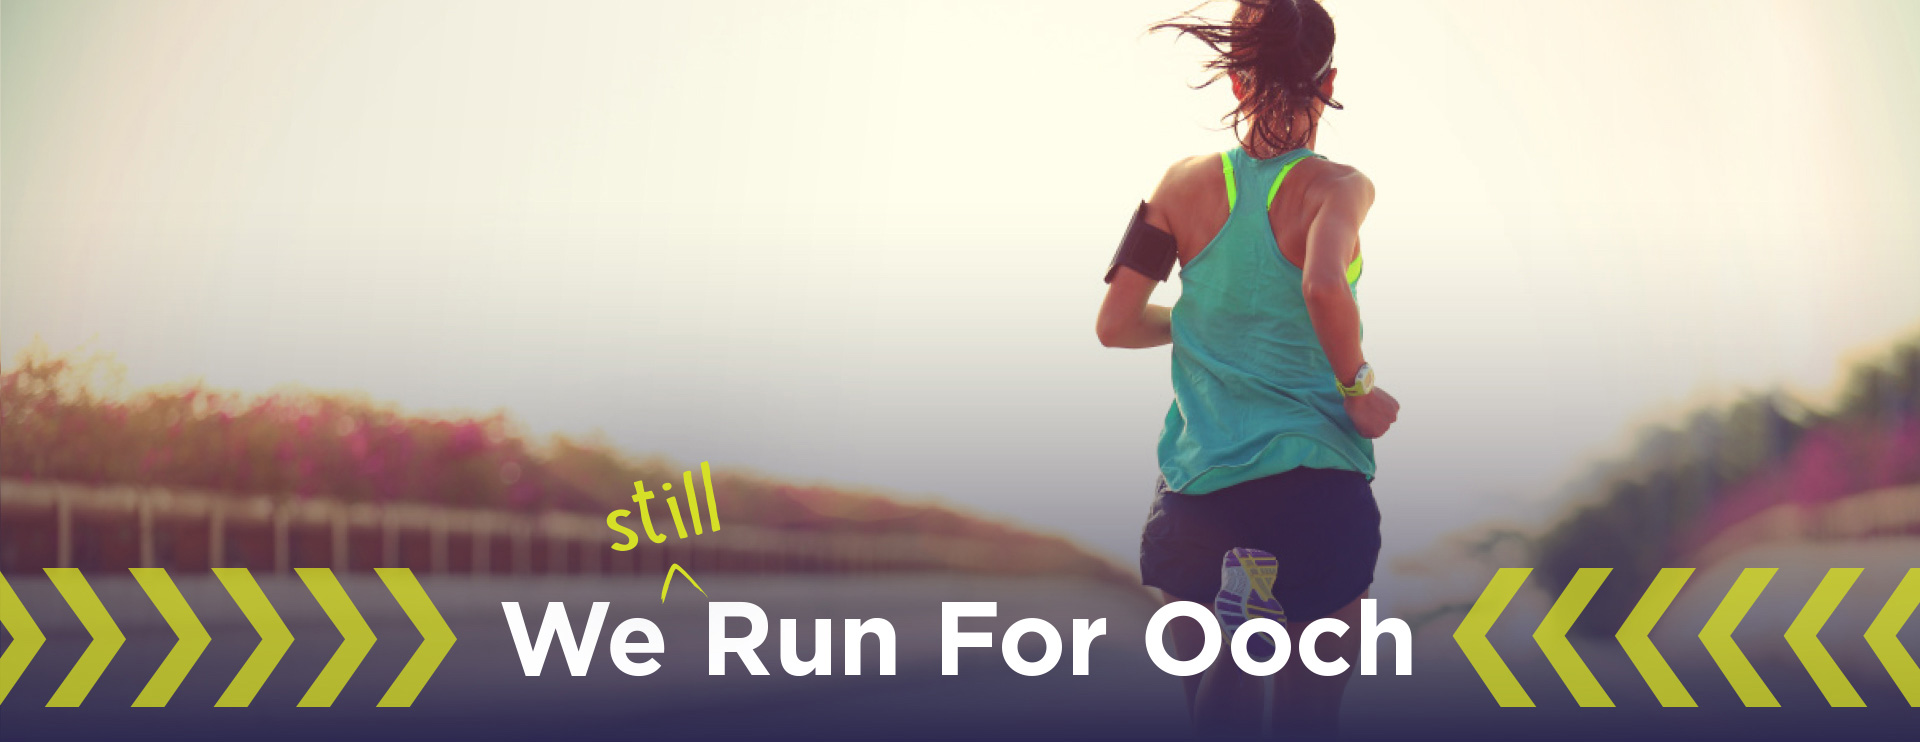 We Still Run For Ooch